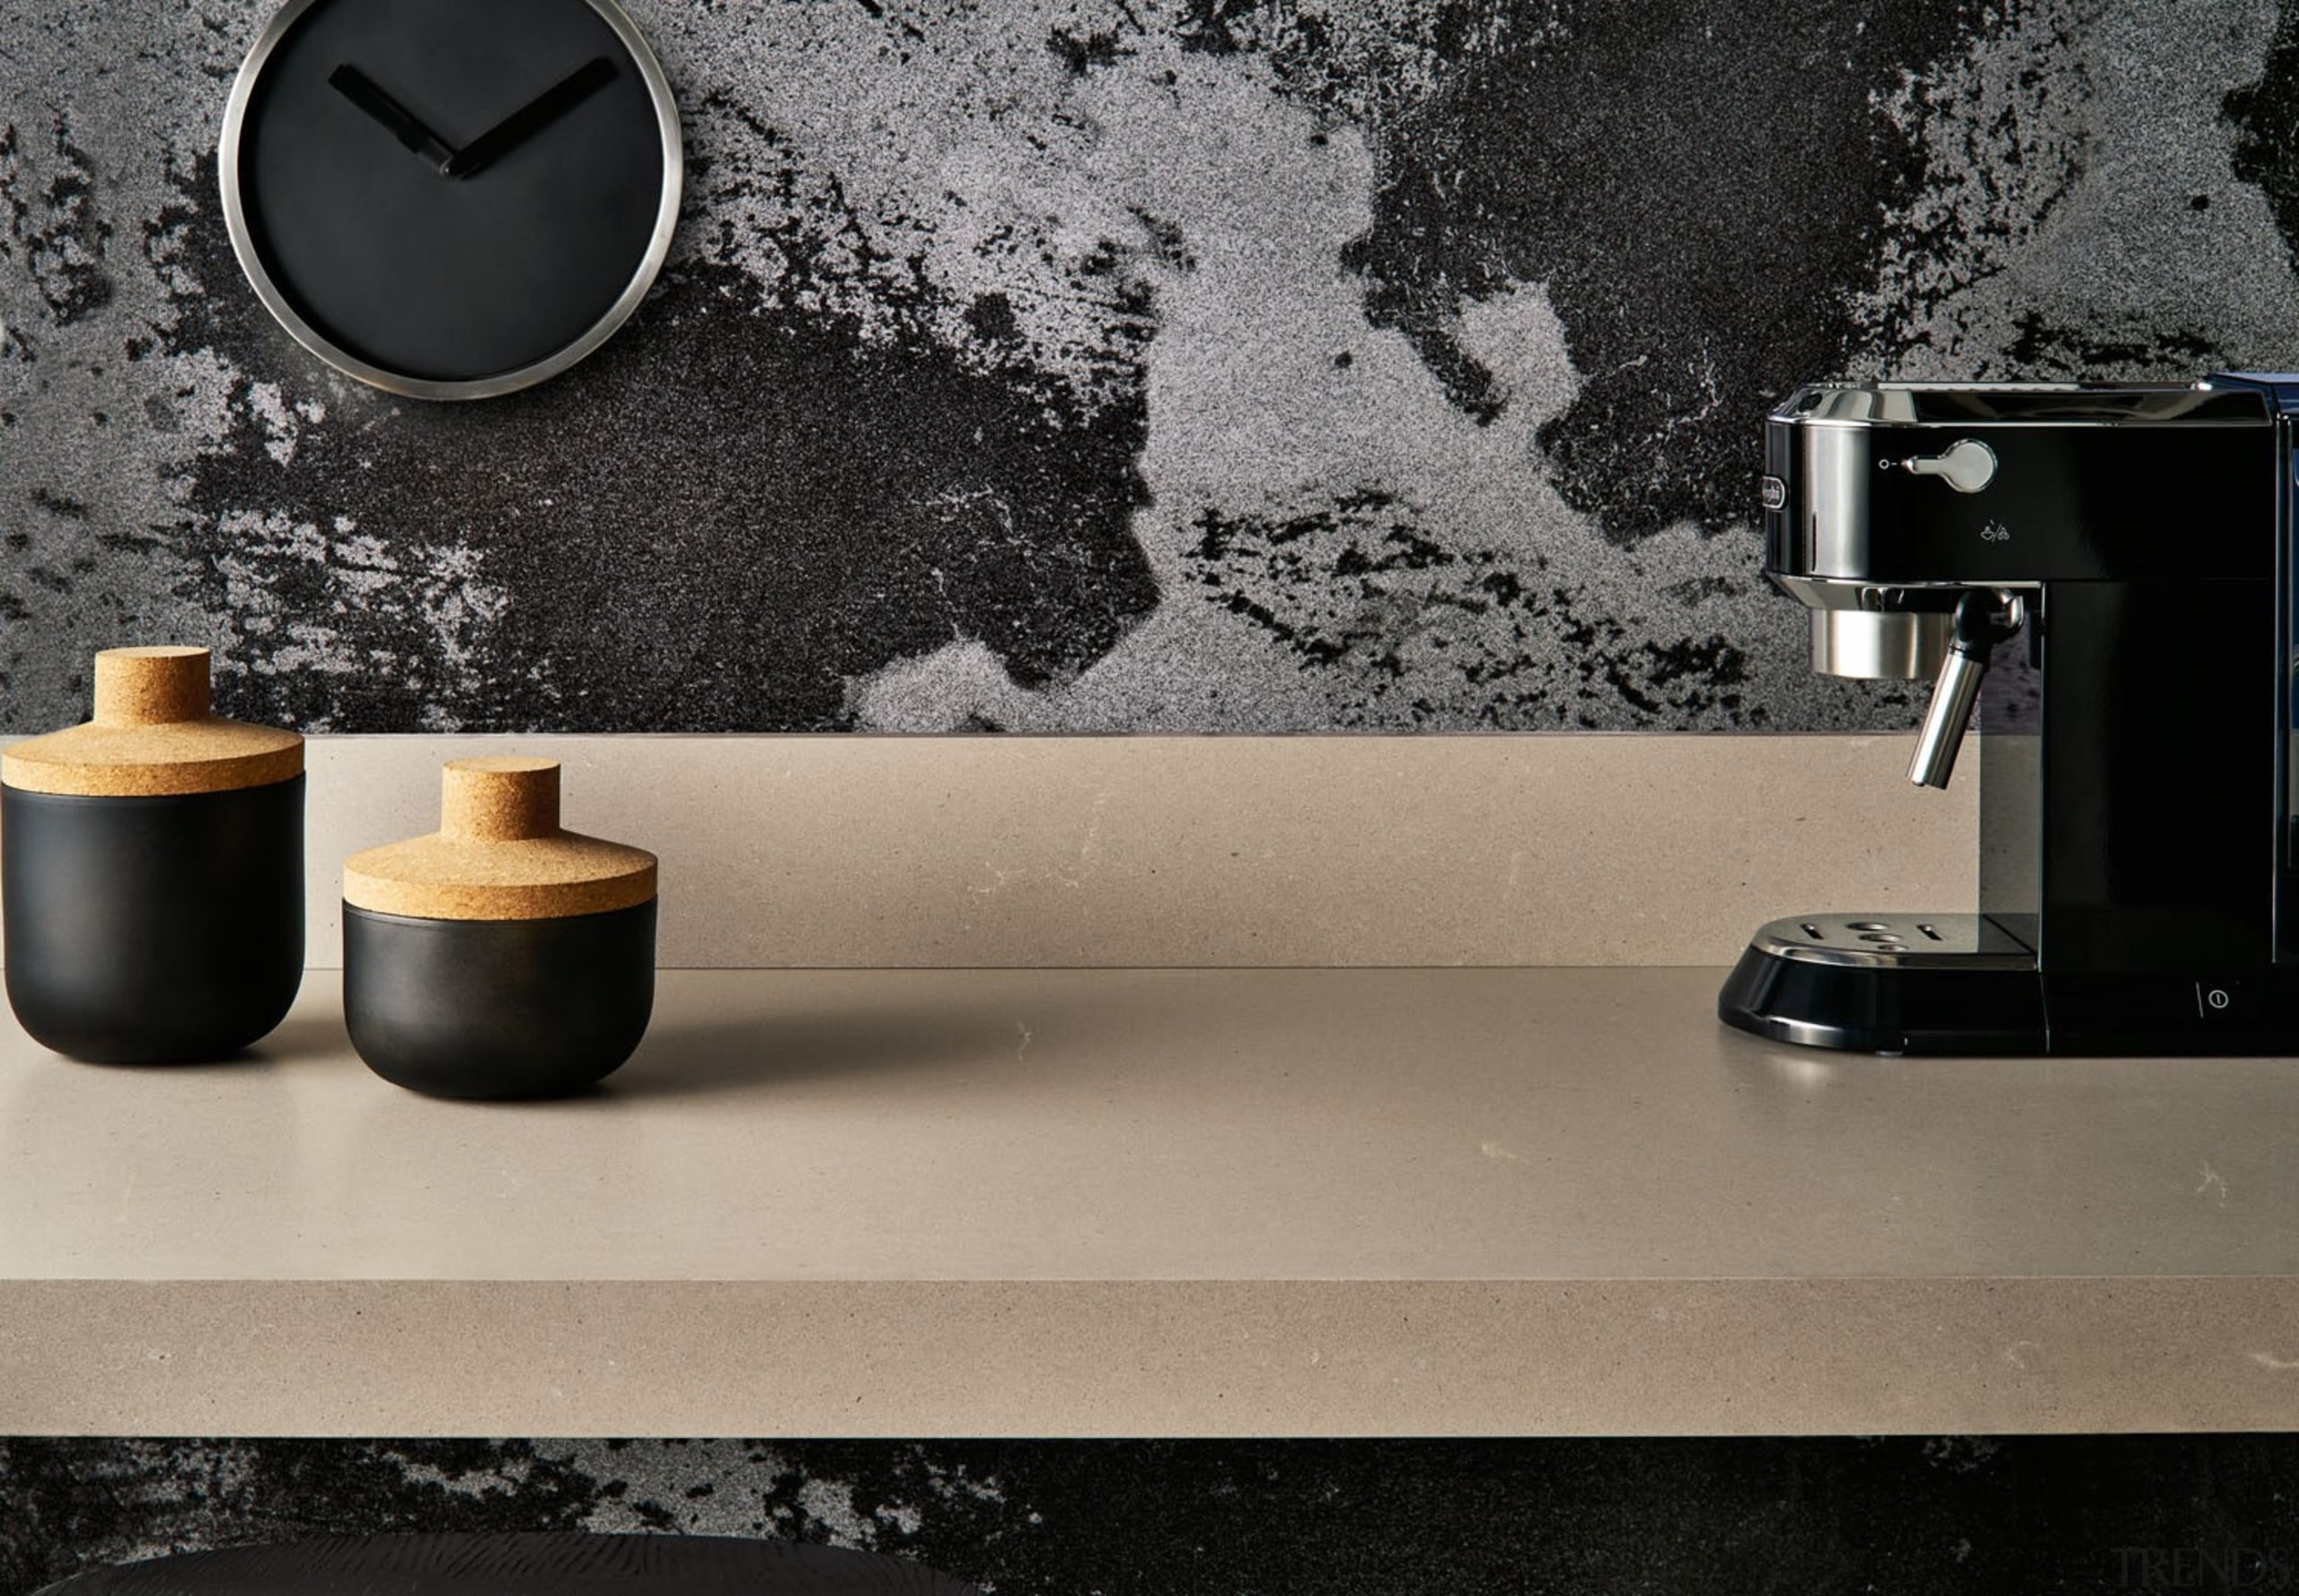 A natural soft grey with a distinctive texture floor, flooring, interior design, product design, still life photography, table, tap, gray, black